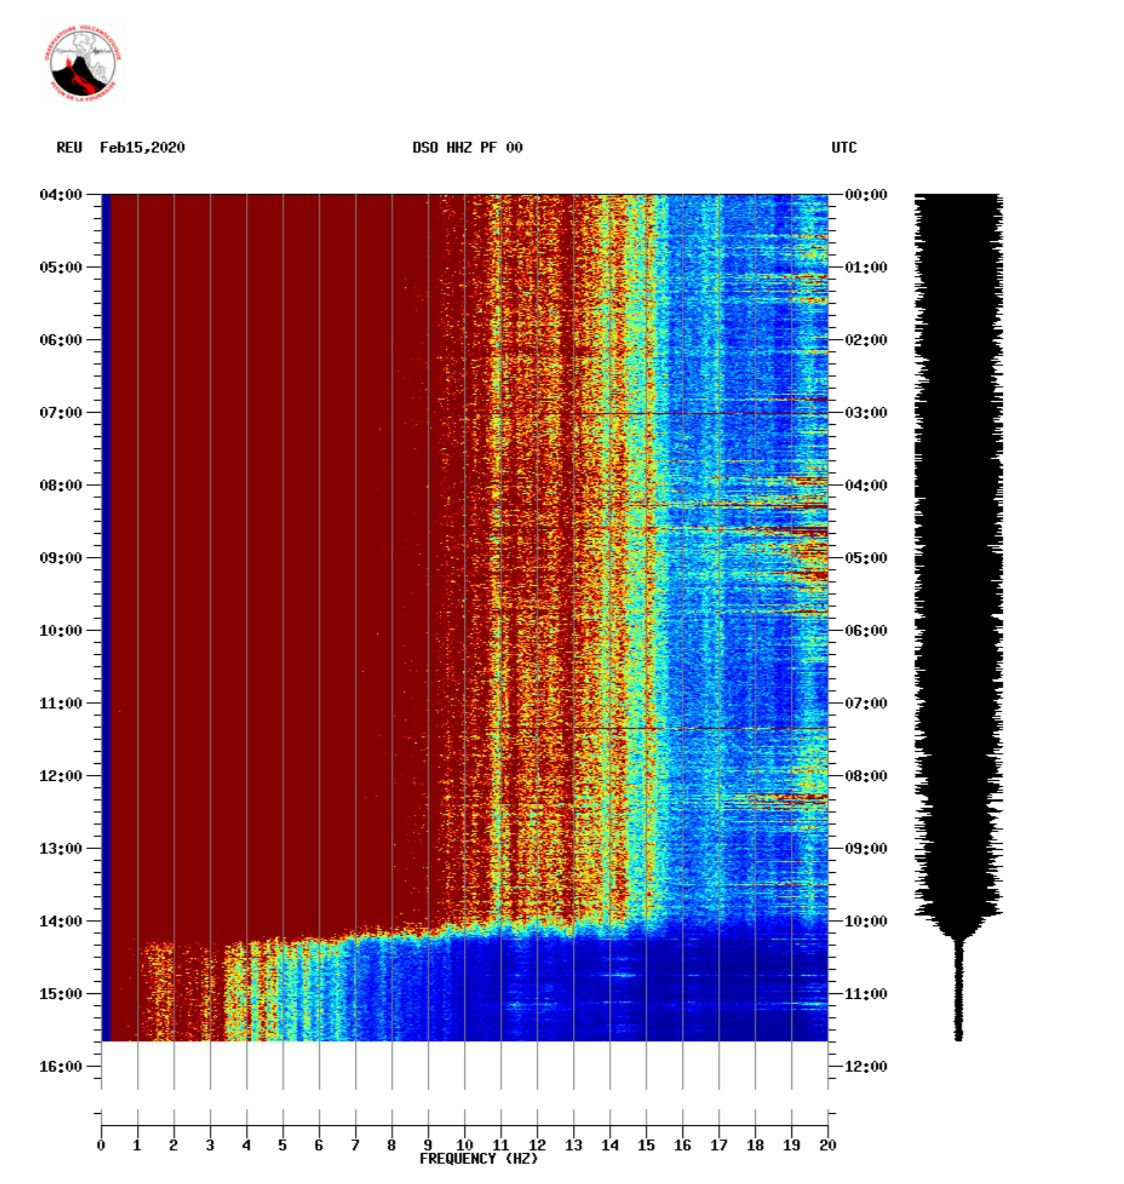 Piton de La Fournaise - Spectrogram showing the evolution of the spectrum of the seismic signal (indicator of the volcanic tremor and the intensity of the eruption) between 02/10/2020 and 02/15/2020 3.30 p.m. local time (11.30 a.m. UT ) on the DSO seismological station located at the top of the volcano. (© OVPF / IPGP)